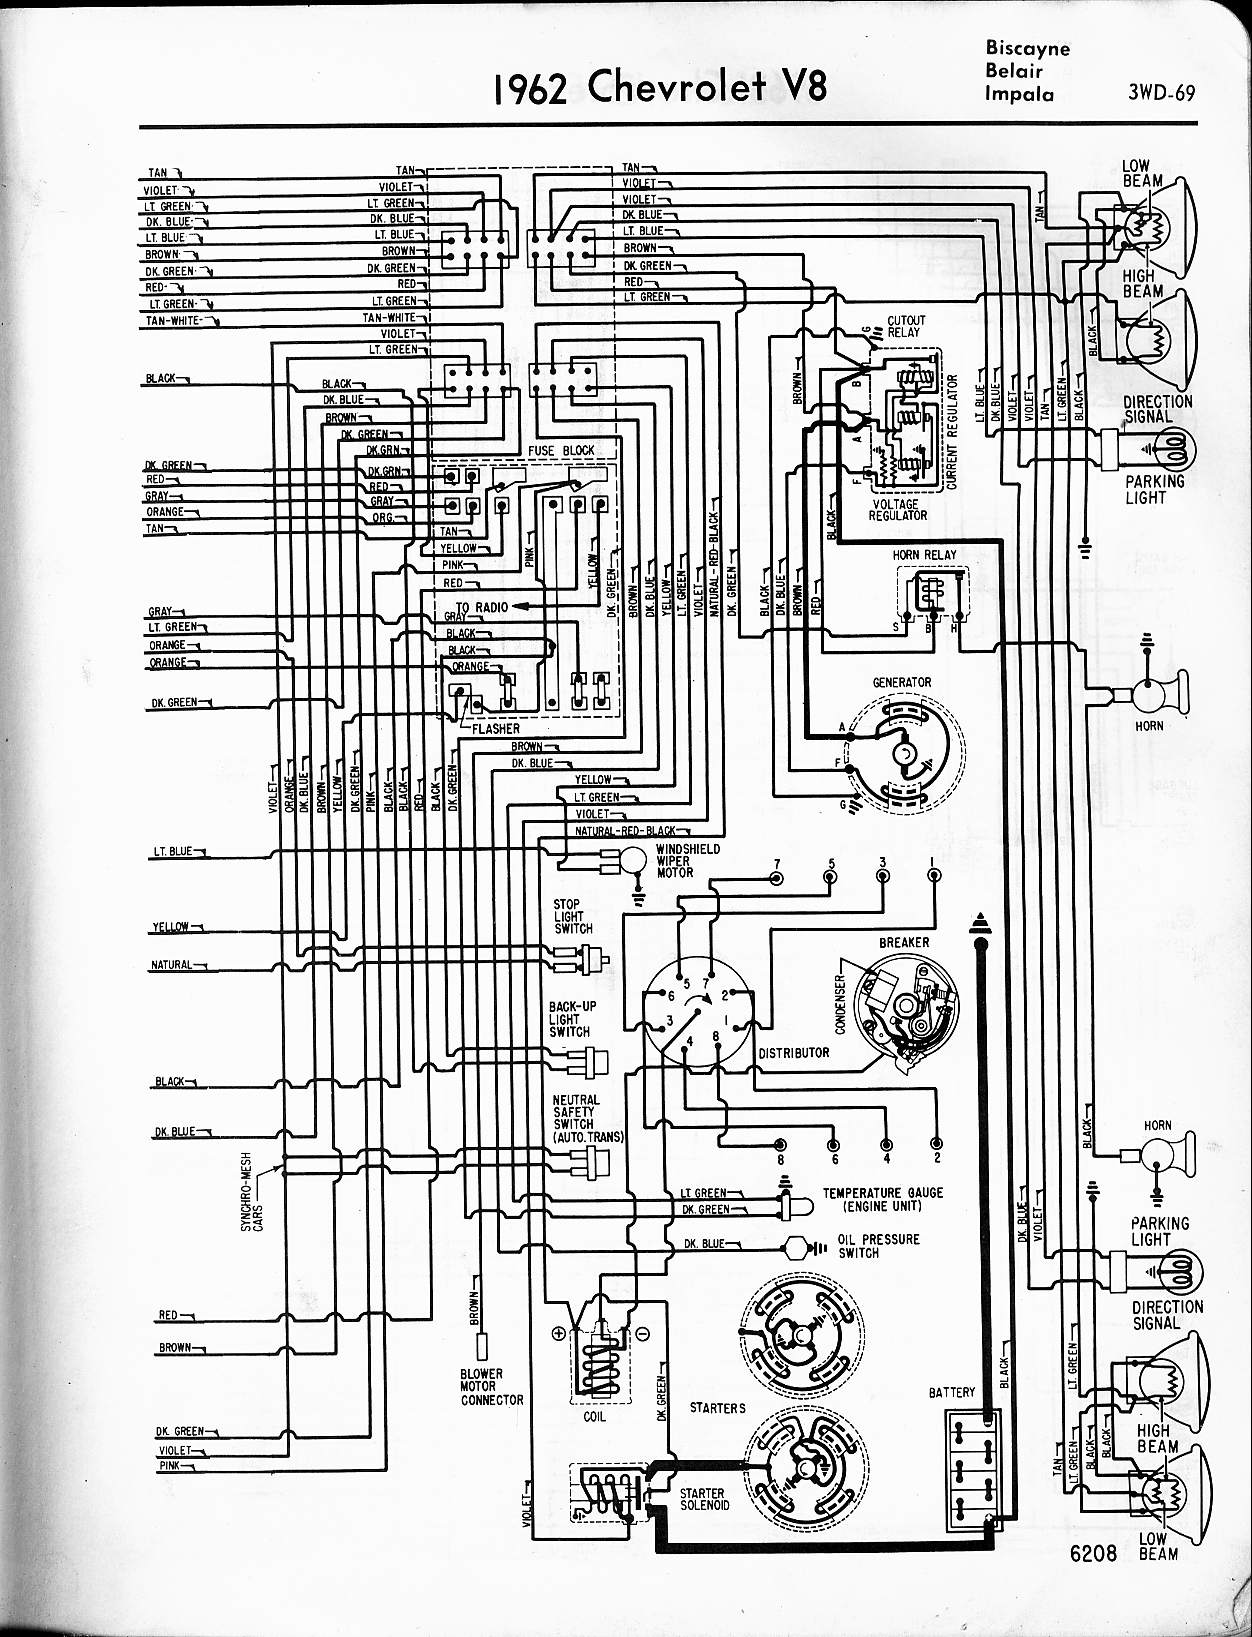 2005 Impala Wiring Diagram List Of Schematic Circuit Headlight Ford Mustang 57 65 Chevy Diagrams Rh Oldcarmanualproject Com Abs